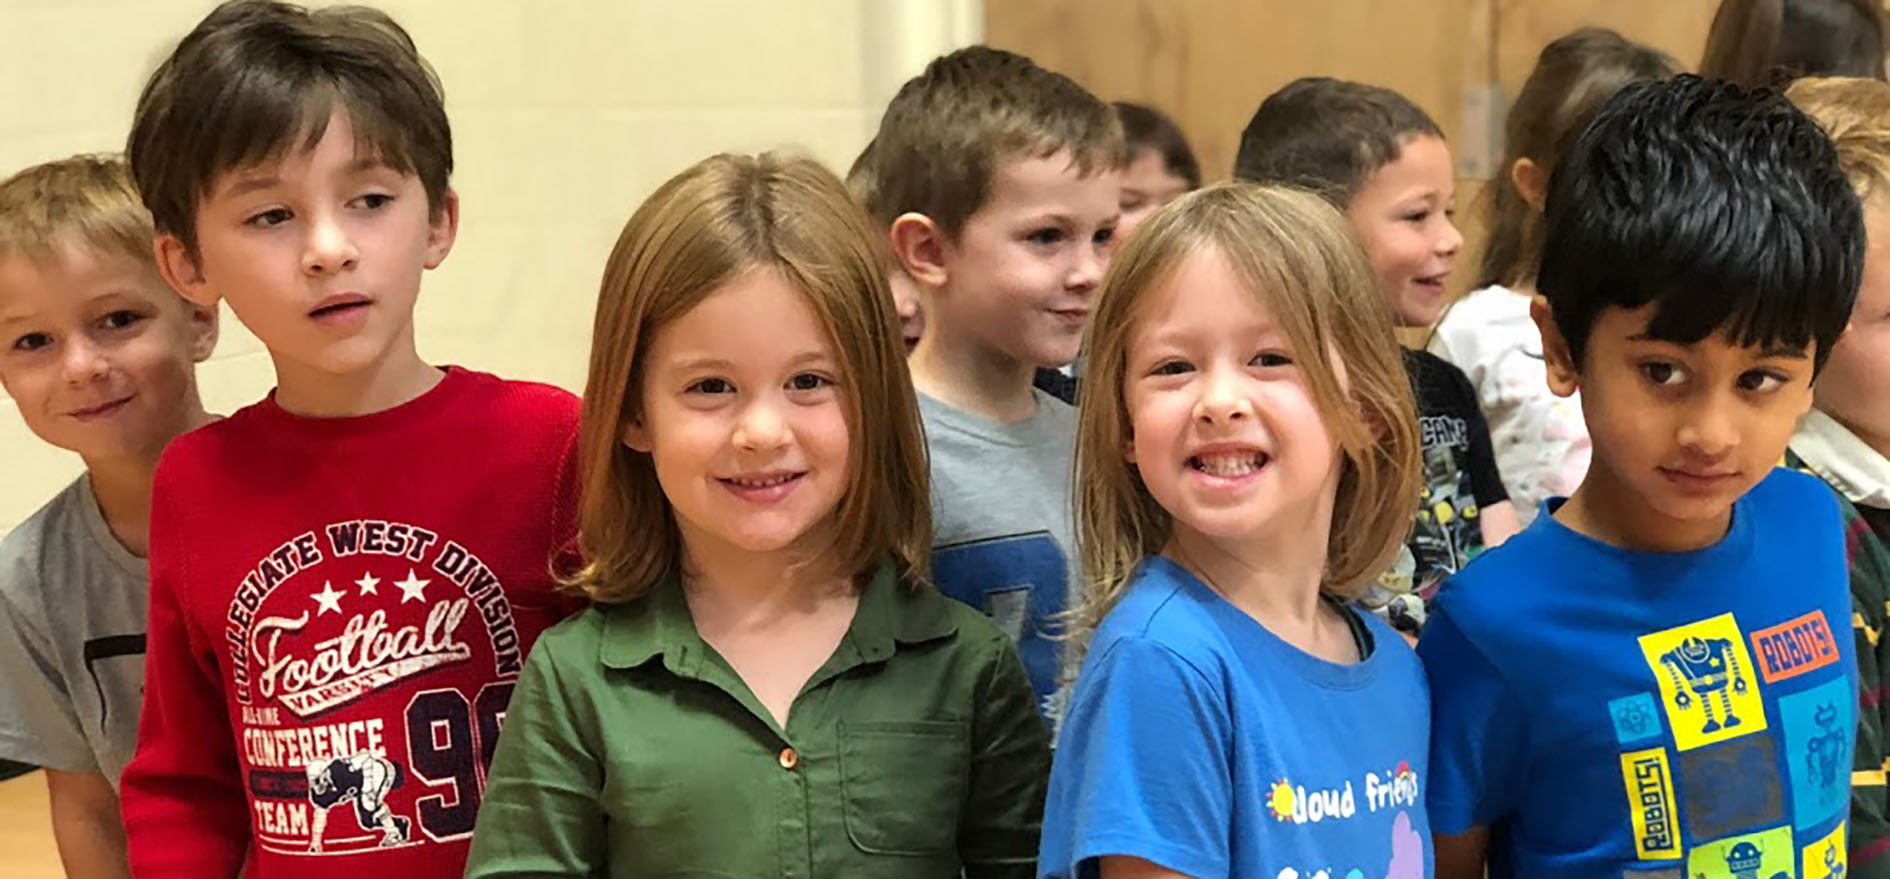 Four kindergartners smile for the camera during gym class